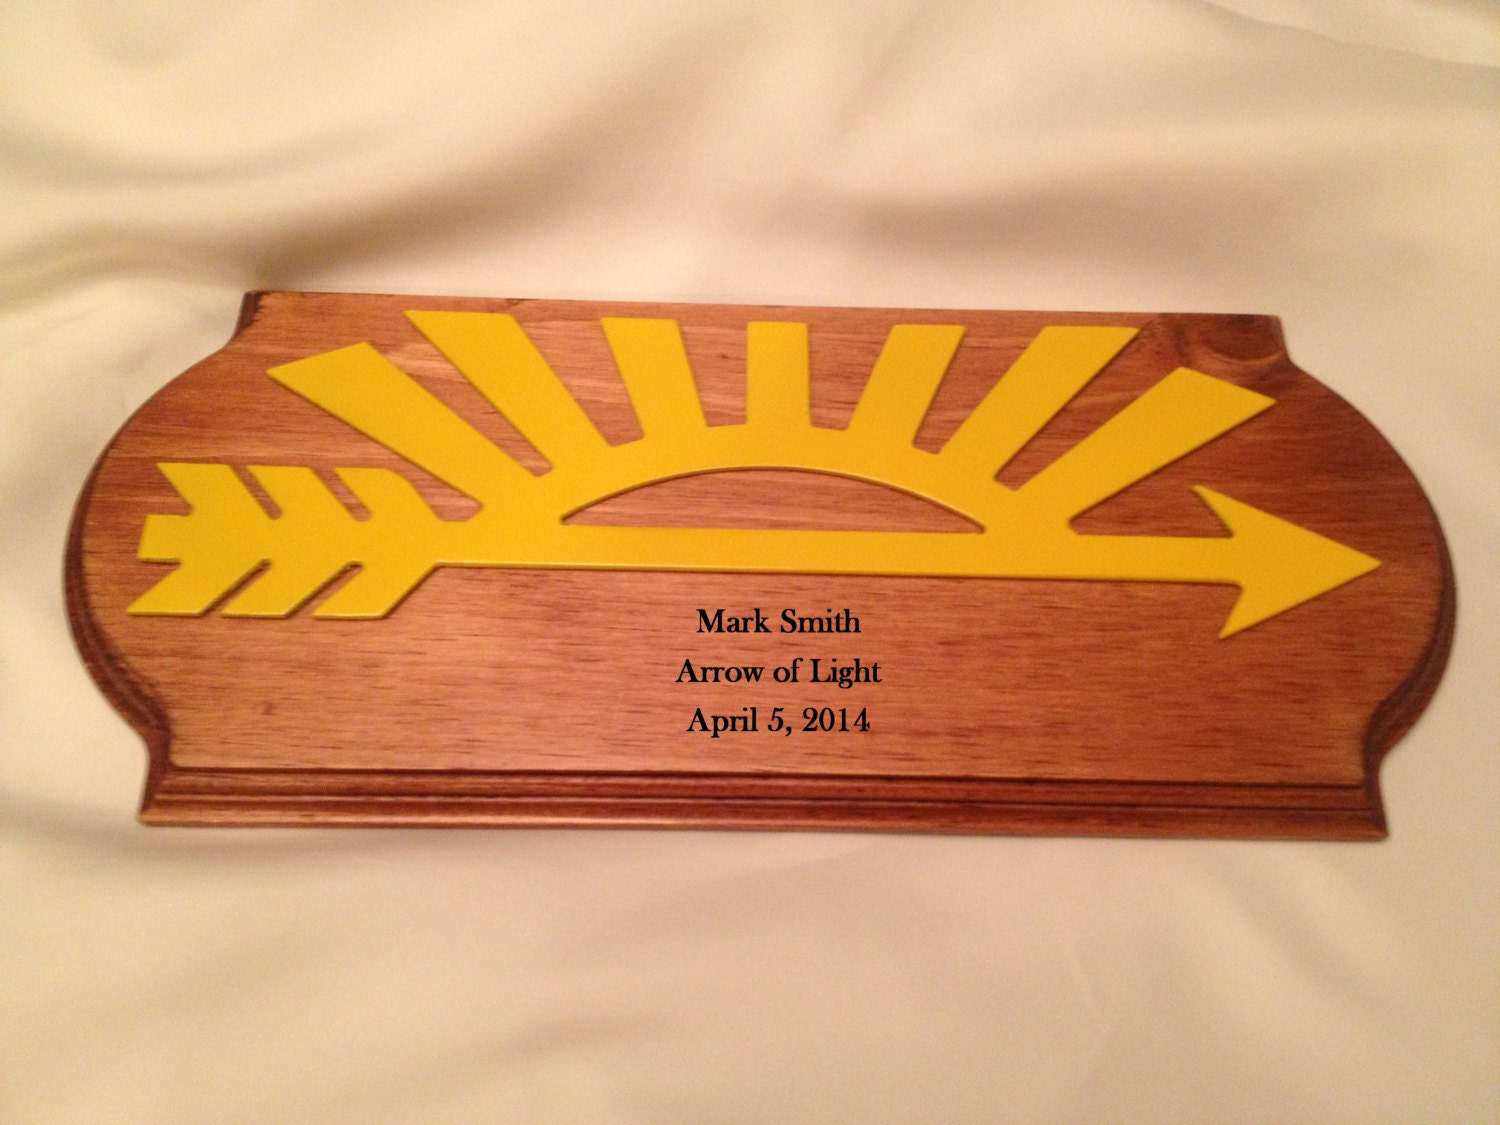 cub scout arrow of light award 2 pine plaque. Black Bedroom Furniture Sets. Home Design Ideas